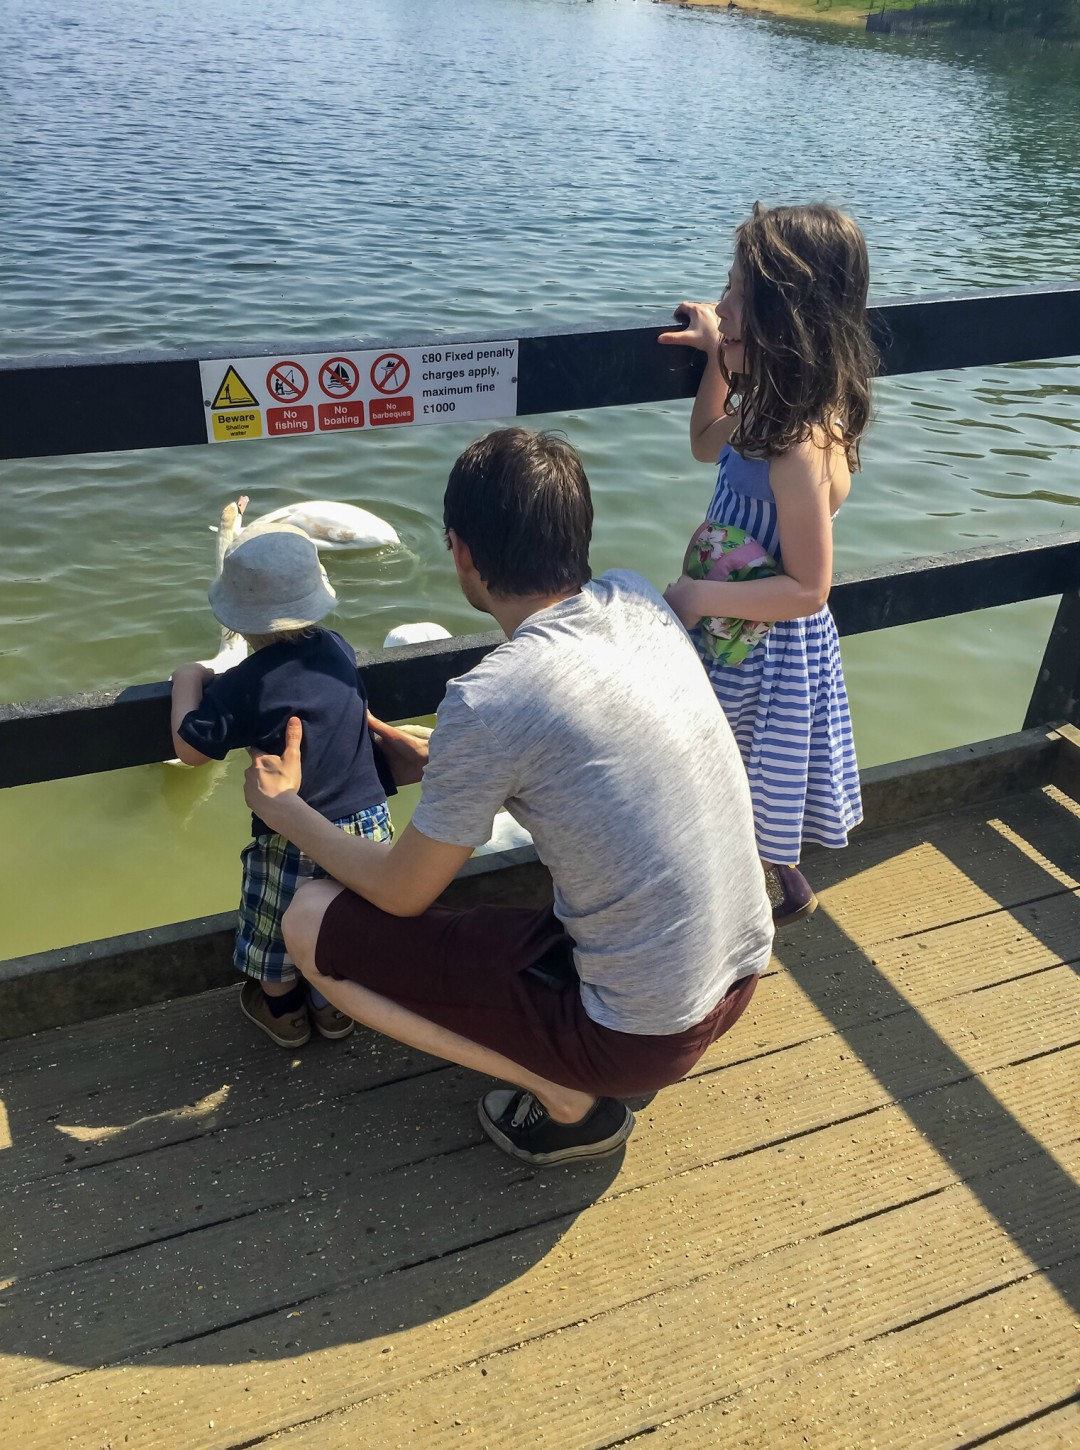 A photograph of a dad, his son and daughter looking out over a lake on a beautiful sunny day - Our Weekend Happy 13: Country Parks, Woodland Walks & Parties - Mrs H's favourite things